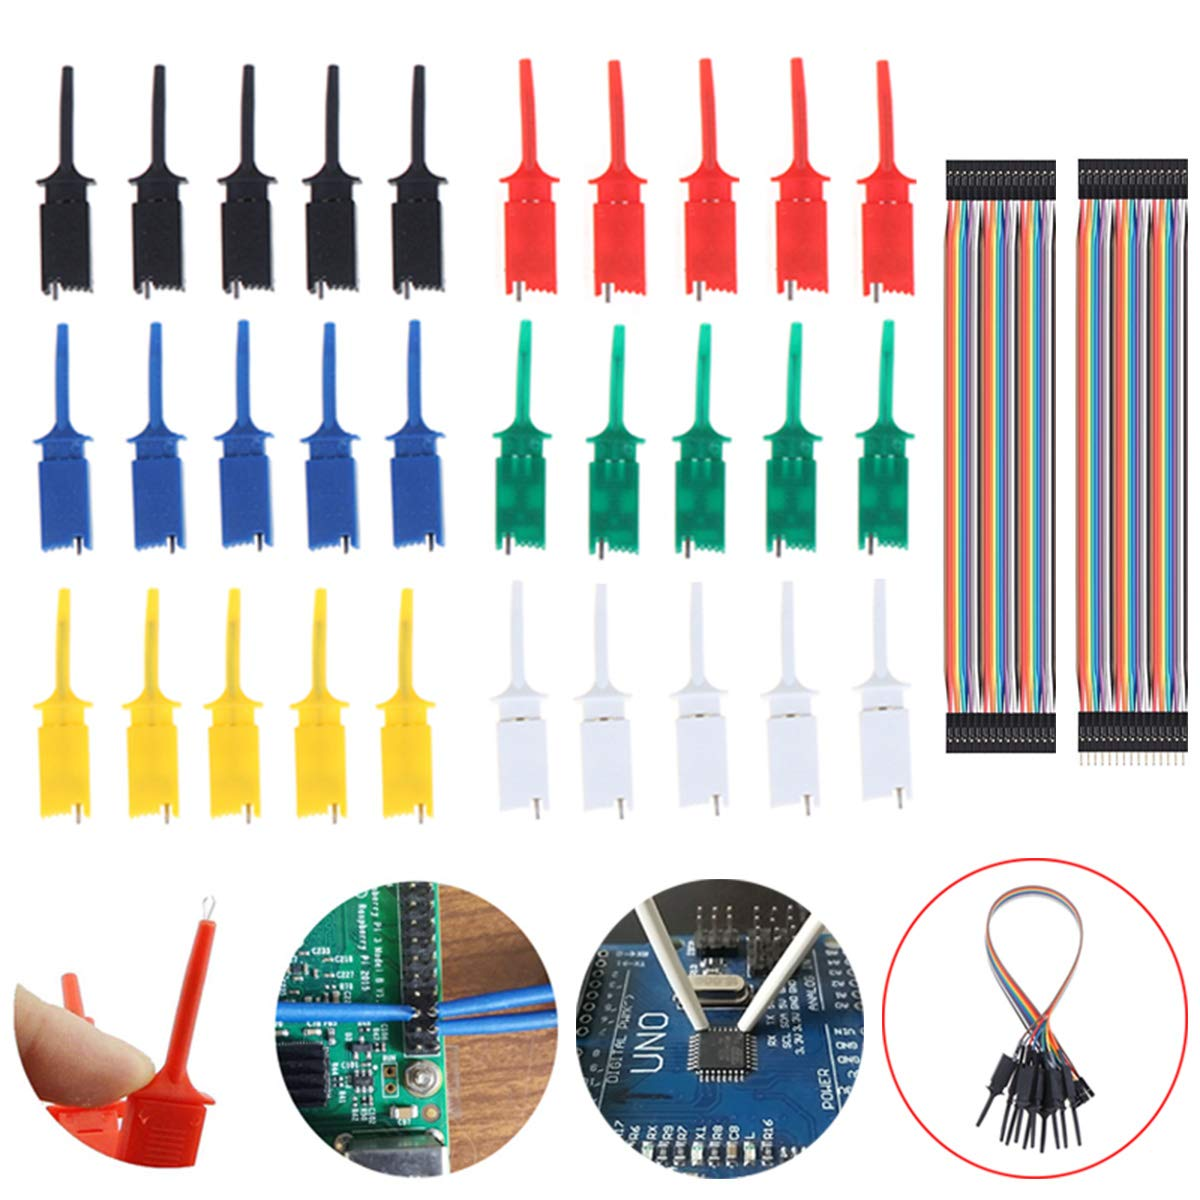 Youmile 30PCS Test Hook Clip Mini 6 Color For SMD IC Electronic Experiment PCB With Dupont Cable Female to Female,male to Female 30 PIN